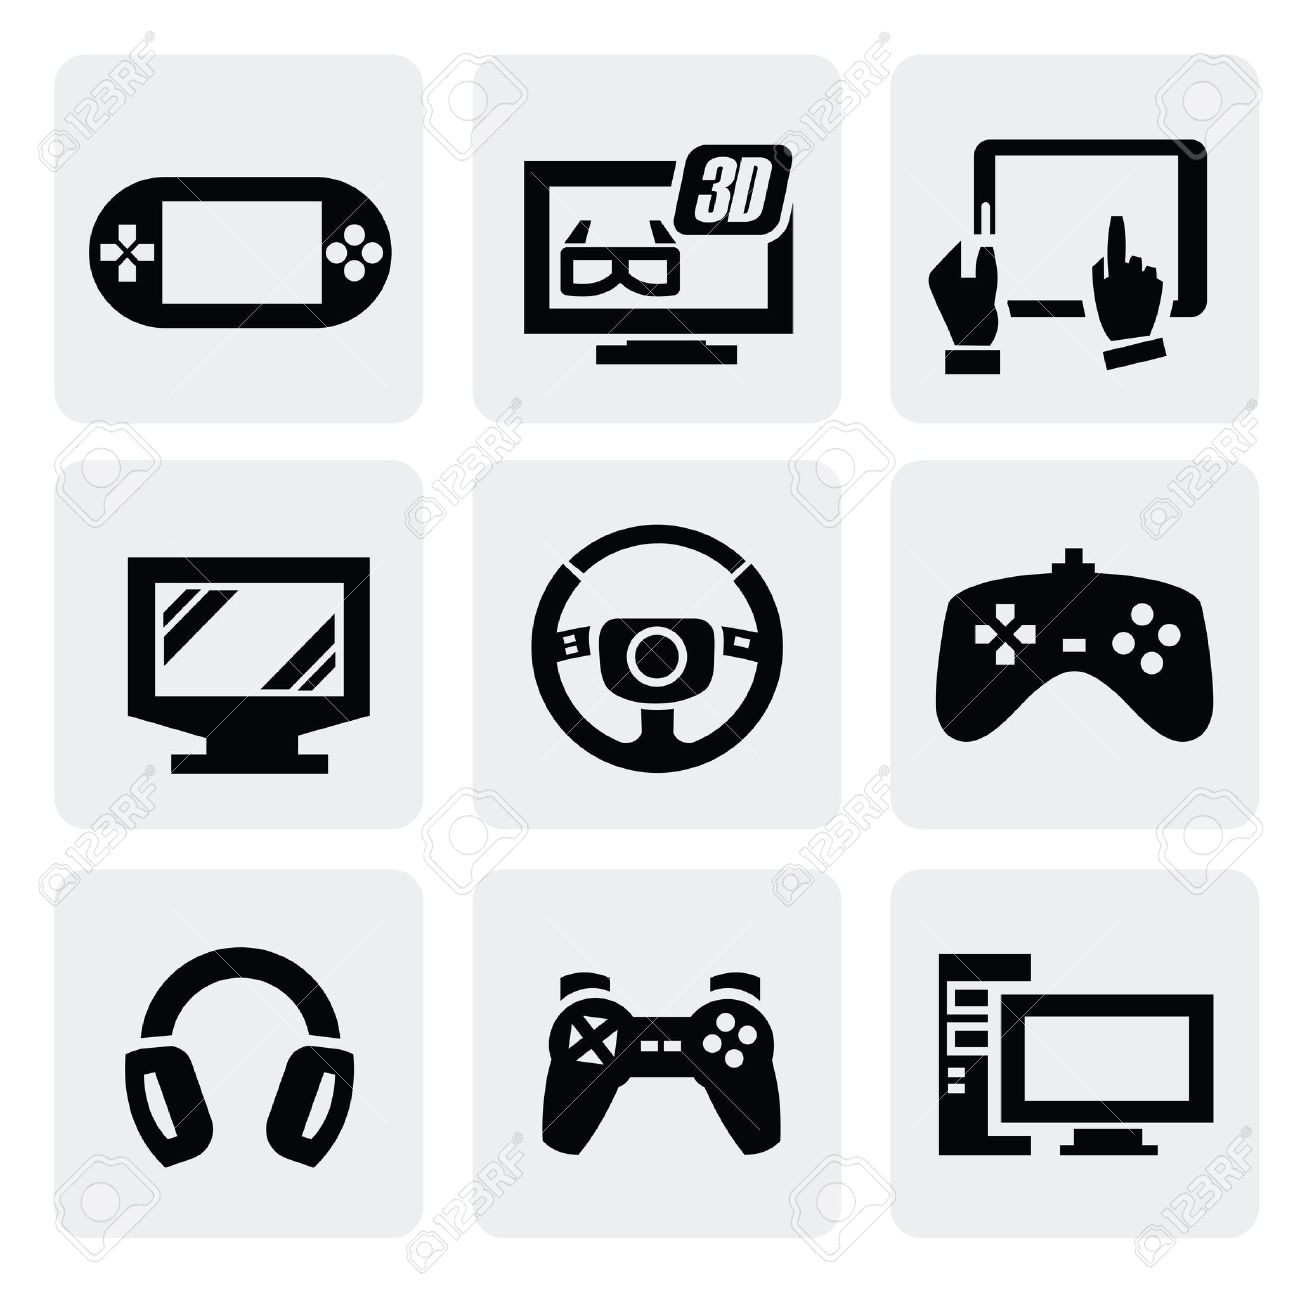 Video Game Icons Set Royalty Free Cliparts, Vectors, And Stock.